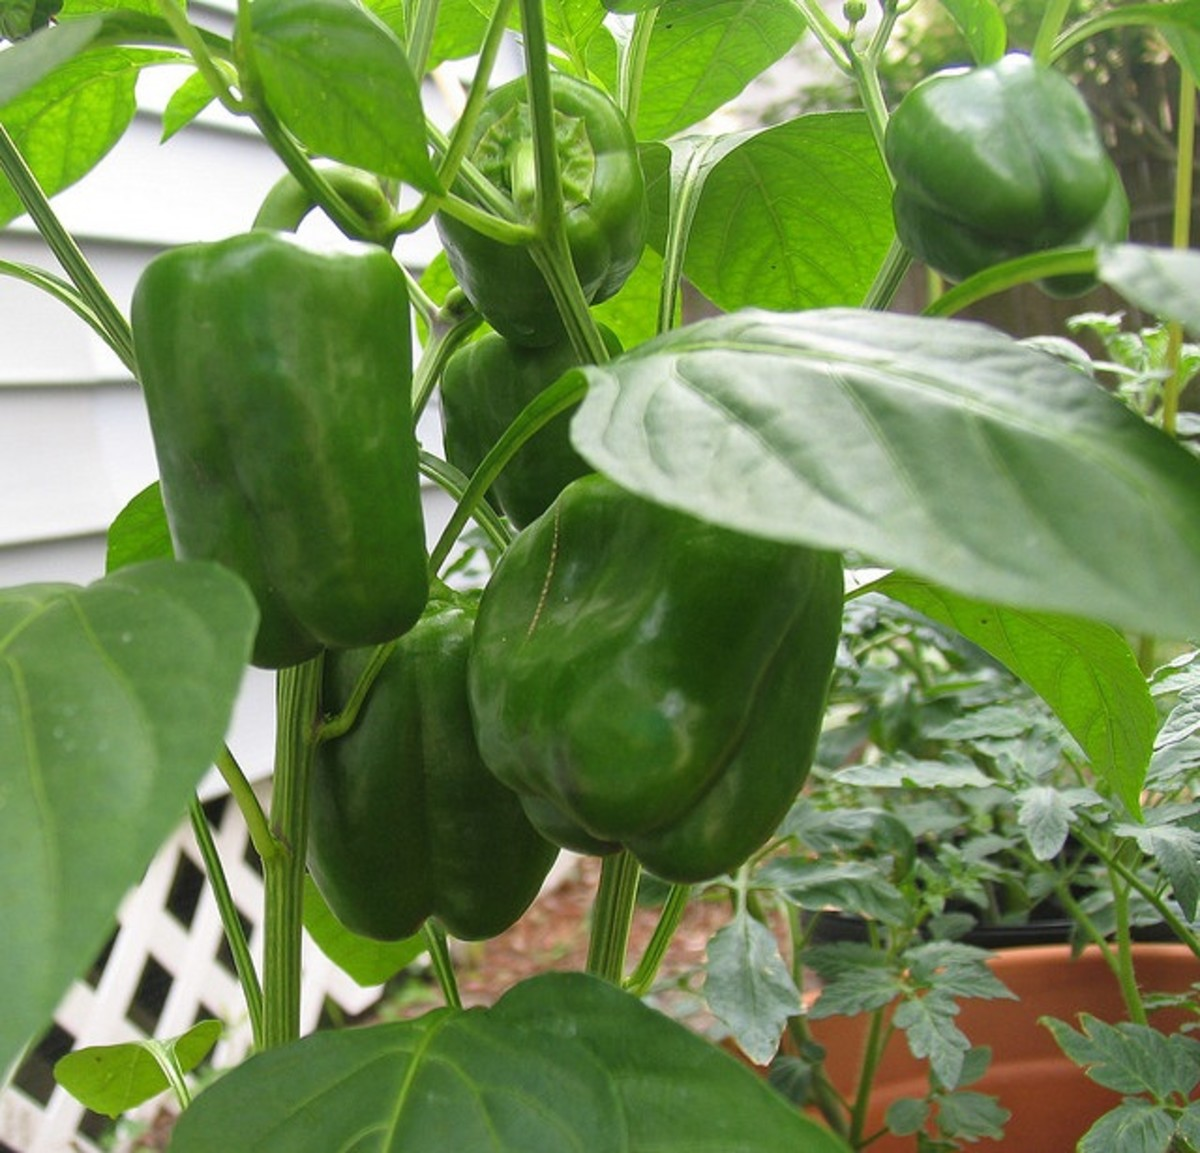 bell peppers growing